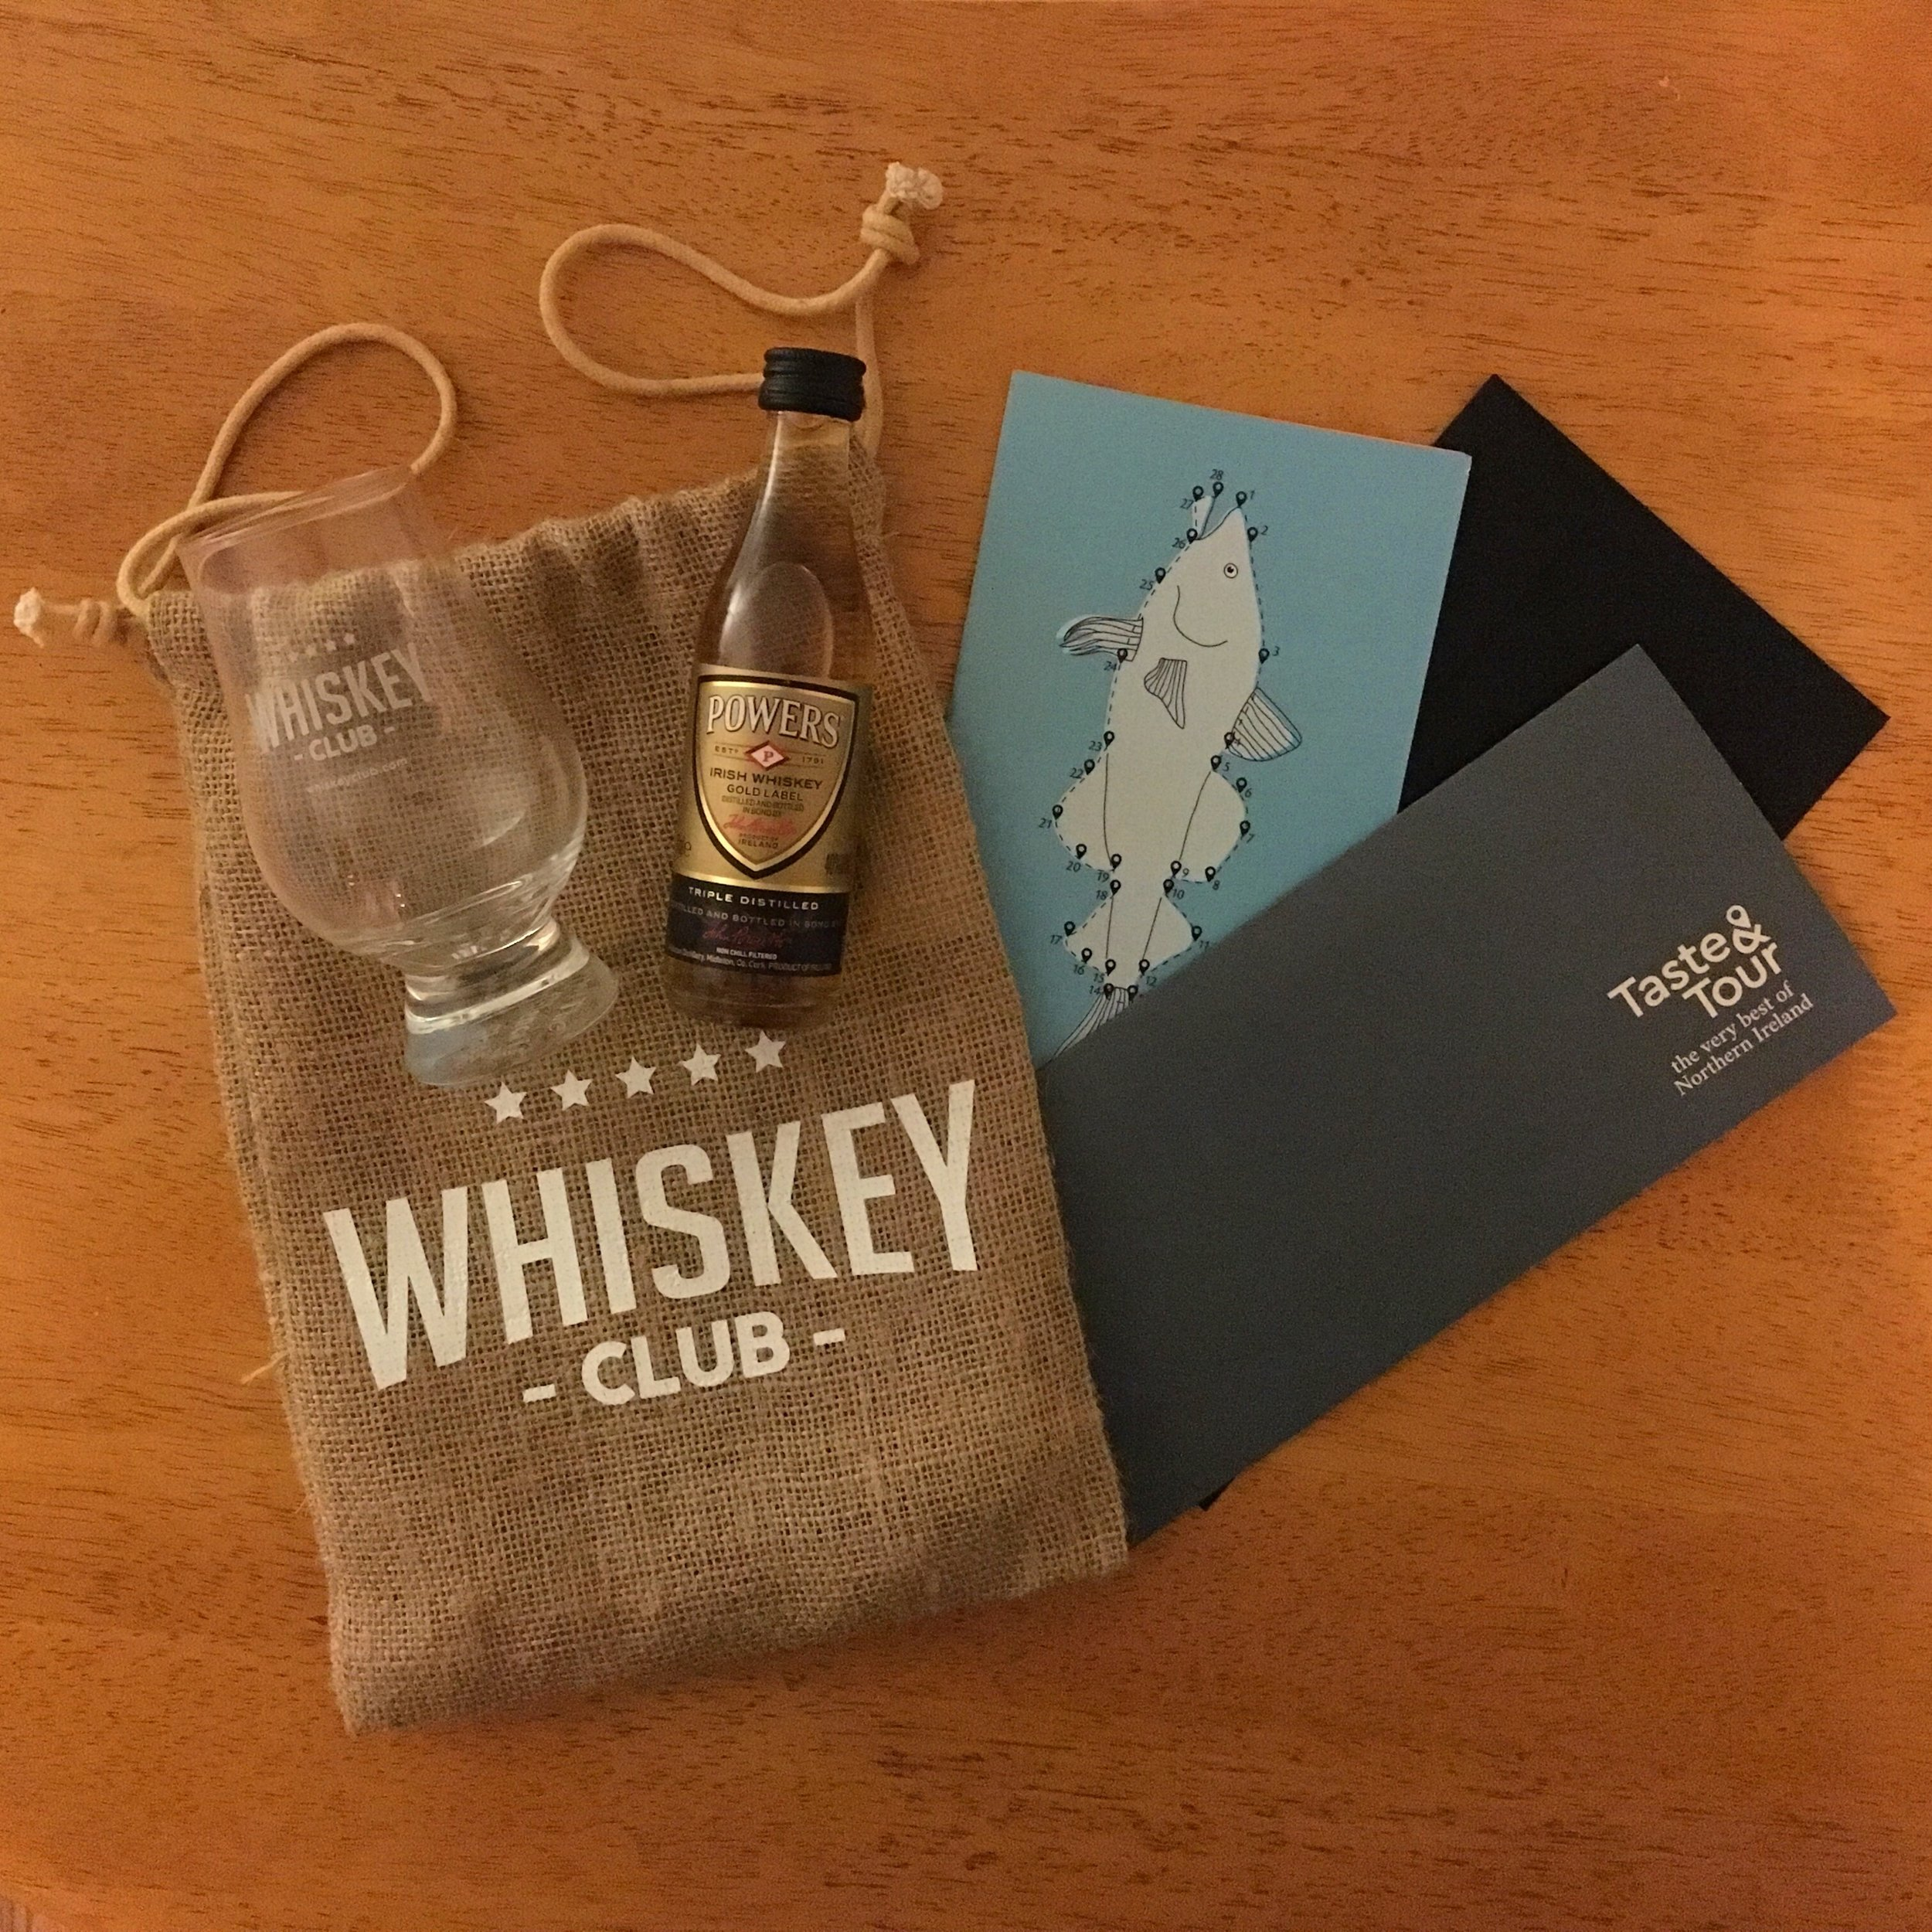 Whiskey Walk Gift Pack Contents...